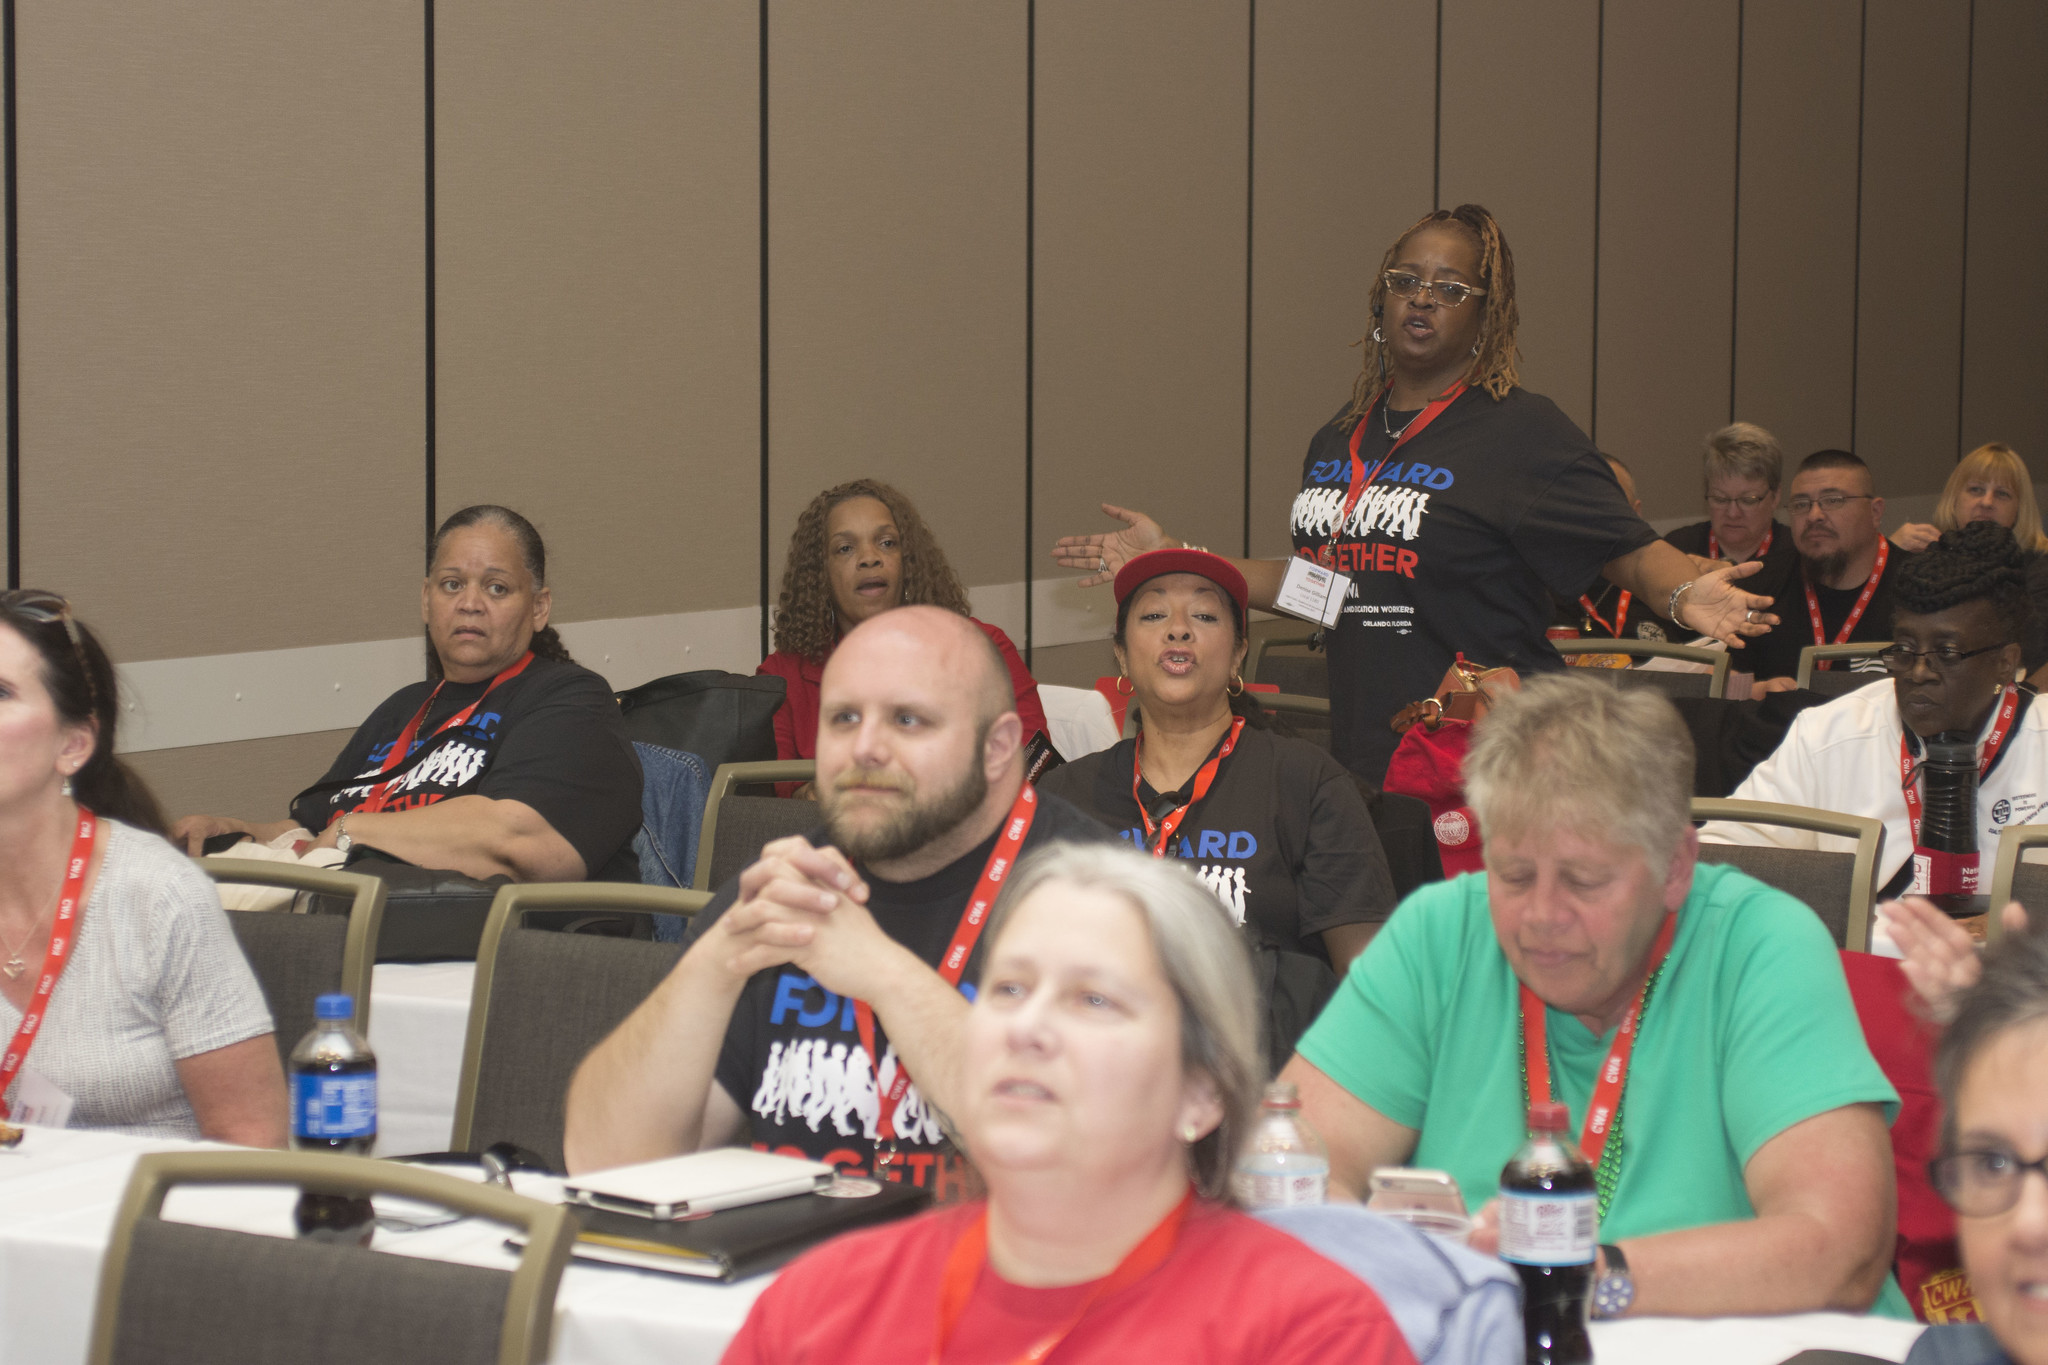 2017 Public, Healthcare, and Education Workers Conference